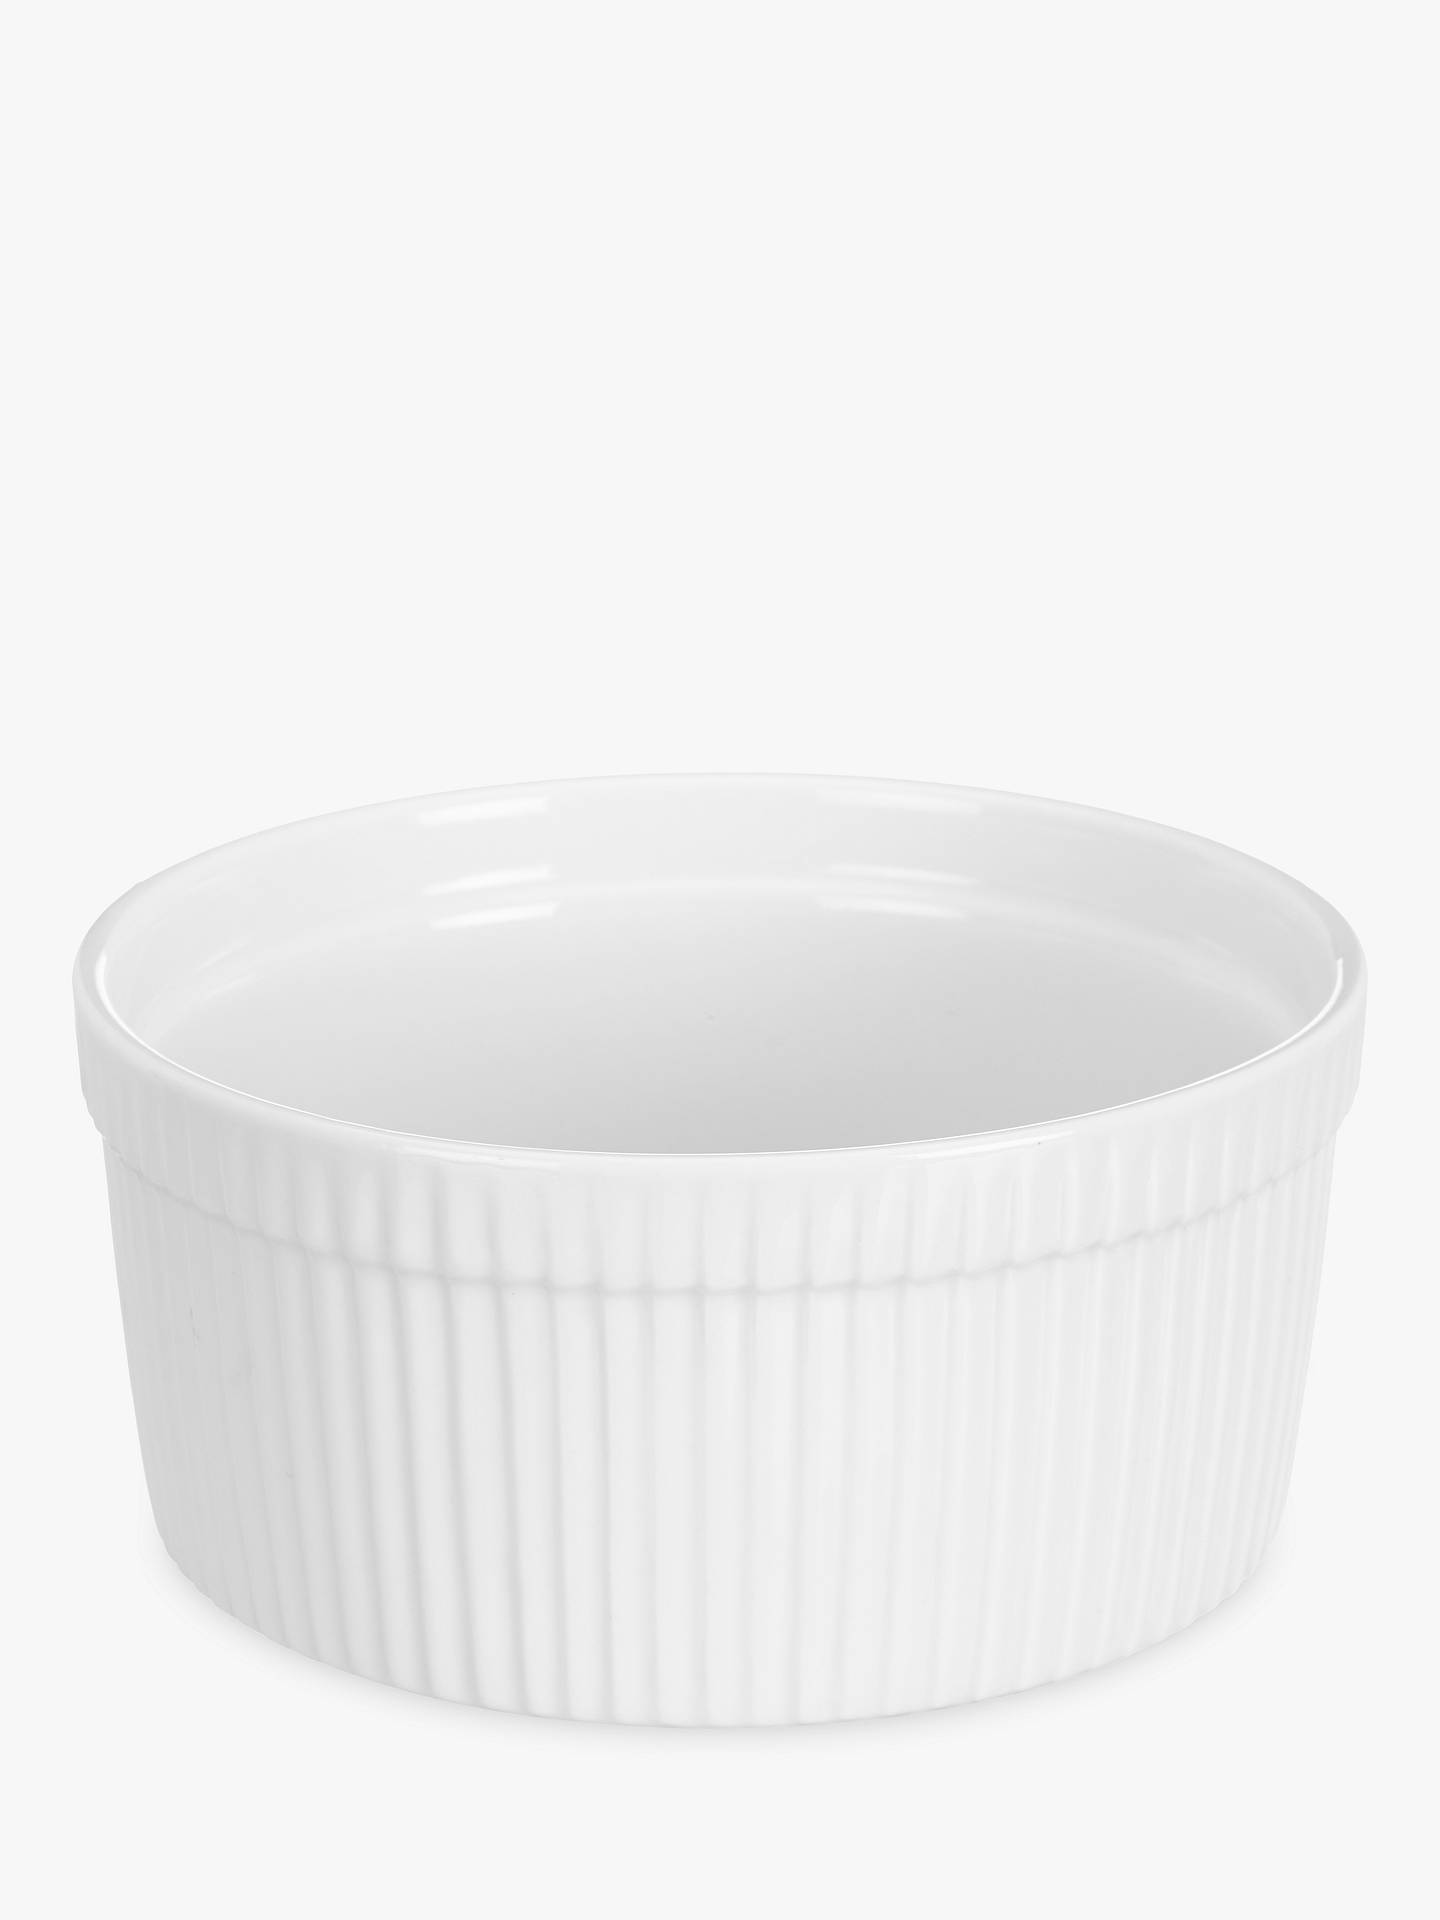 Buy John Lewis & Partners Porcelain Round Soufflé Oven Dish, 17.5cm, Set of 2, White Online at johnlewis.com